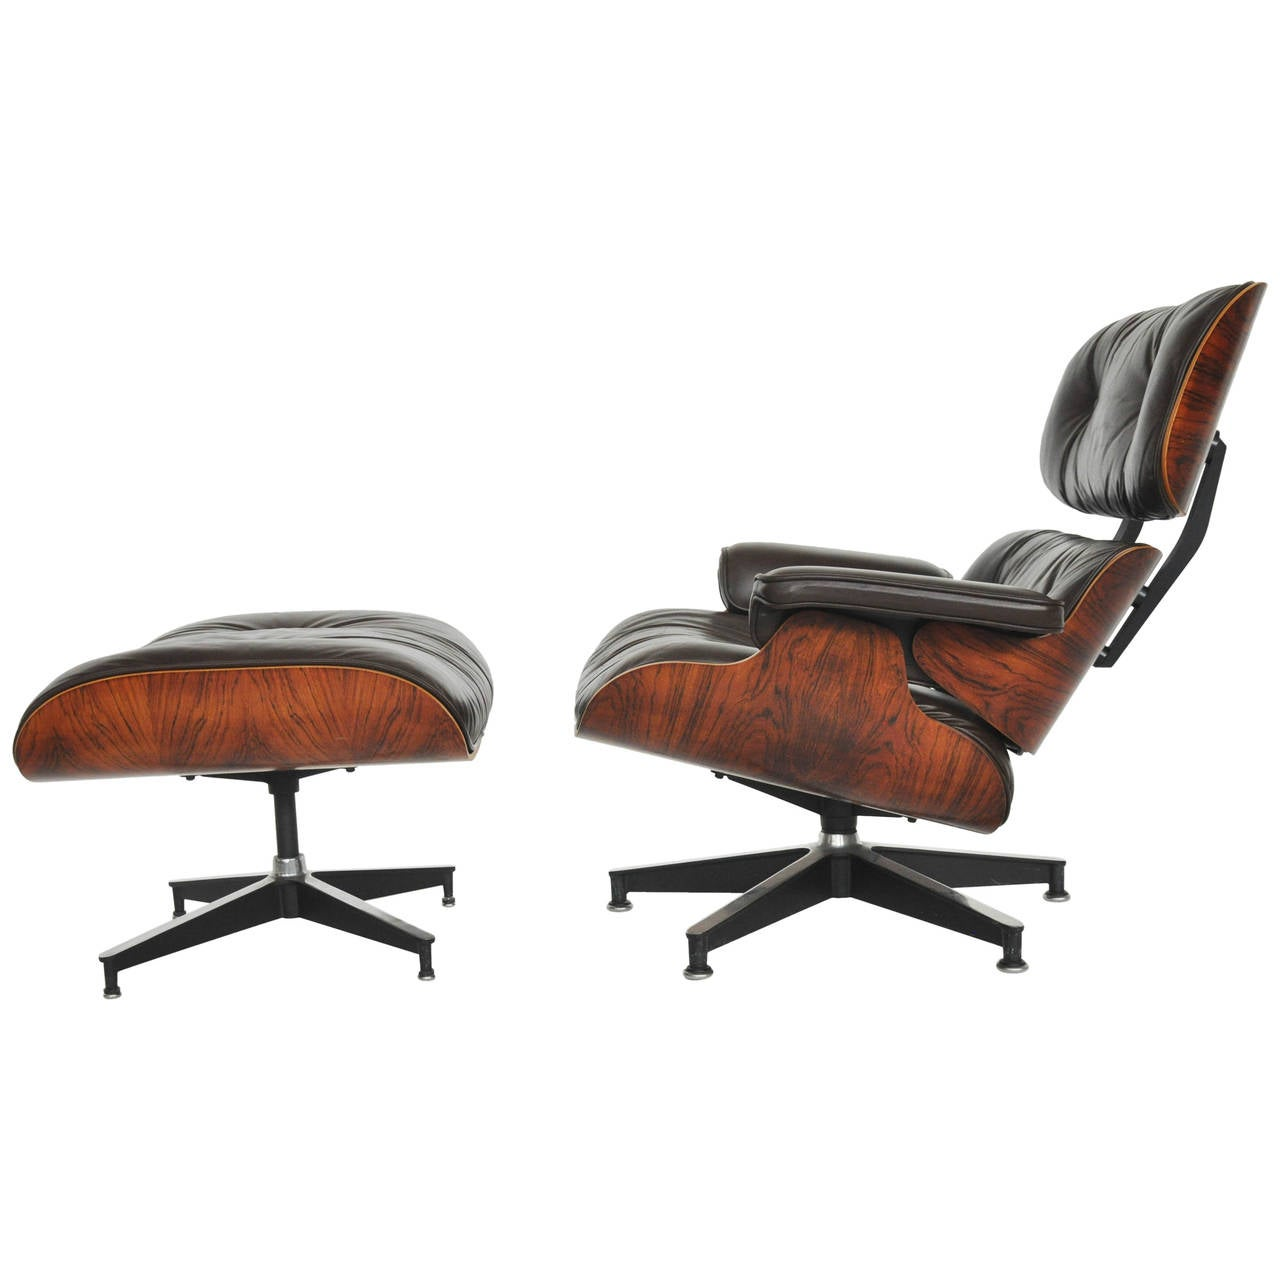 Charles Eames Lounge Chair Rosewood Charles Eames Lounge Chair Herman Miller Dark